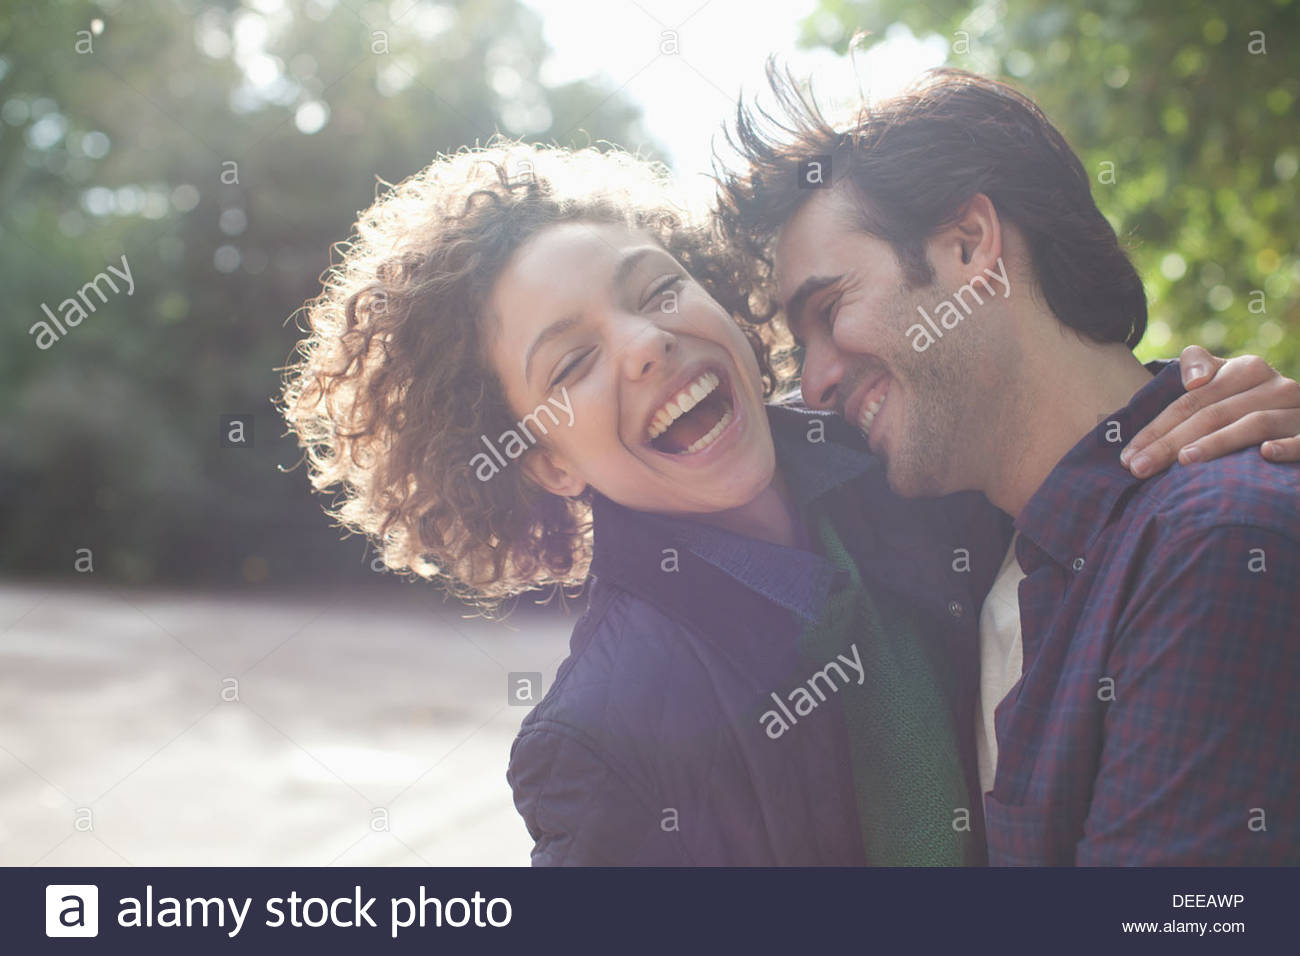 Close up laughing couple hugging Photo Stock